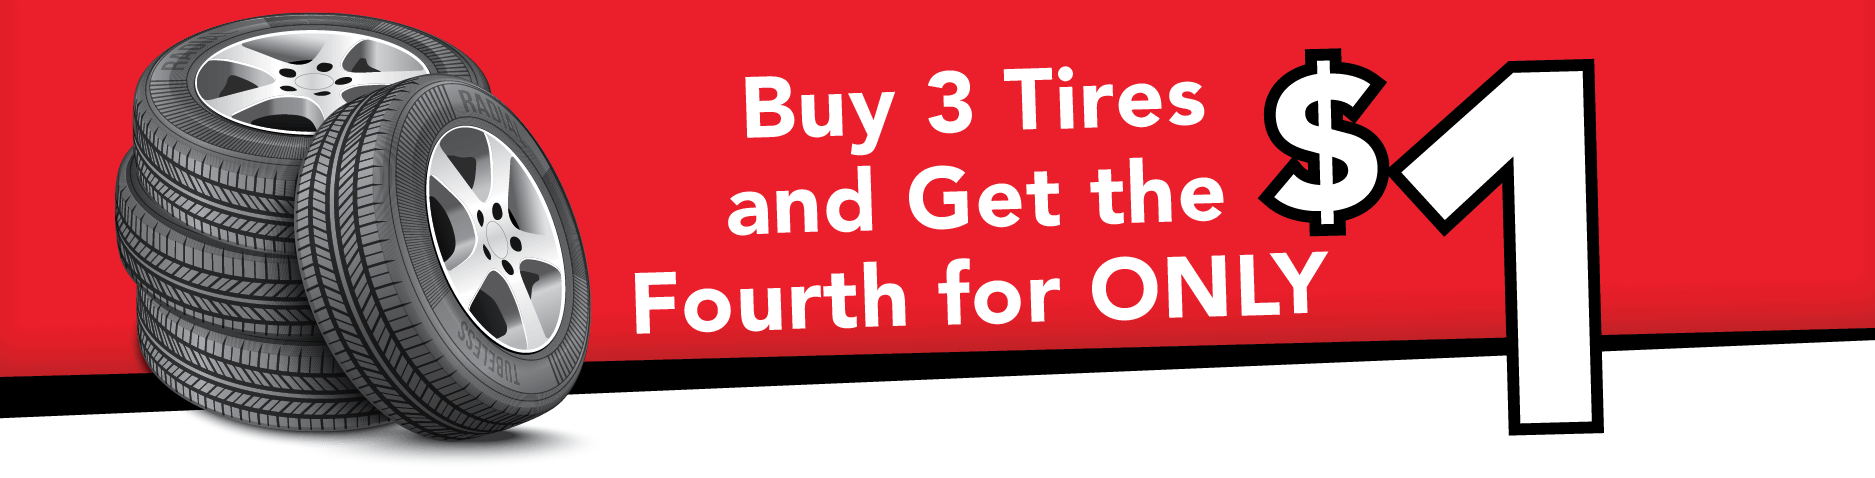 Tire Specials from Toyota of Henderson